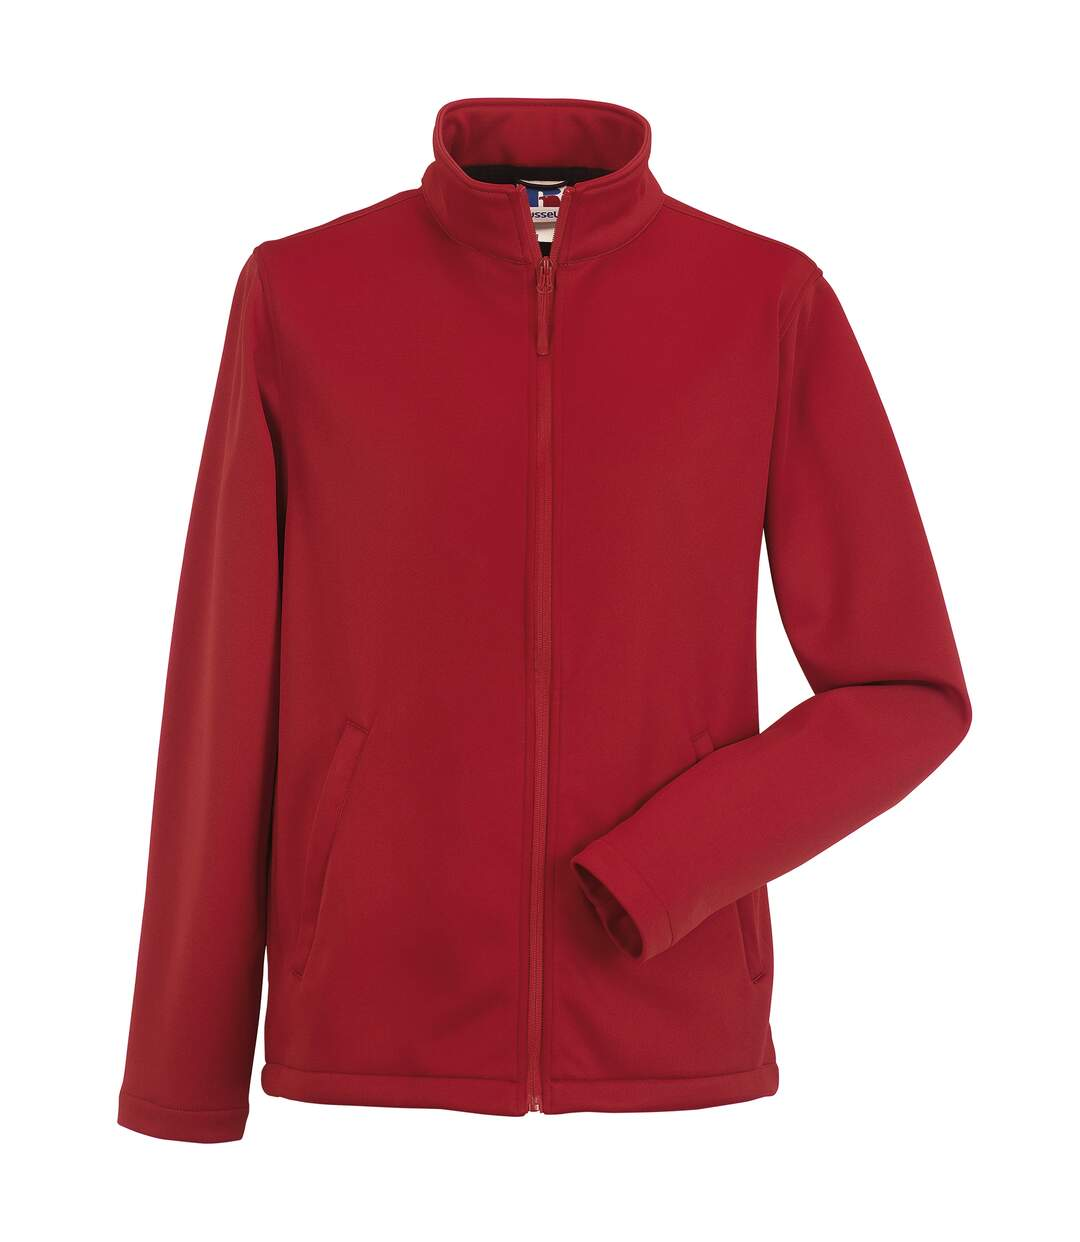 Russell Mens Smart Softshell Jacket (Classic Red) - UTBC1509